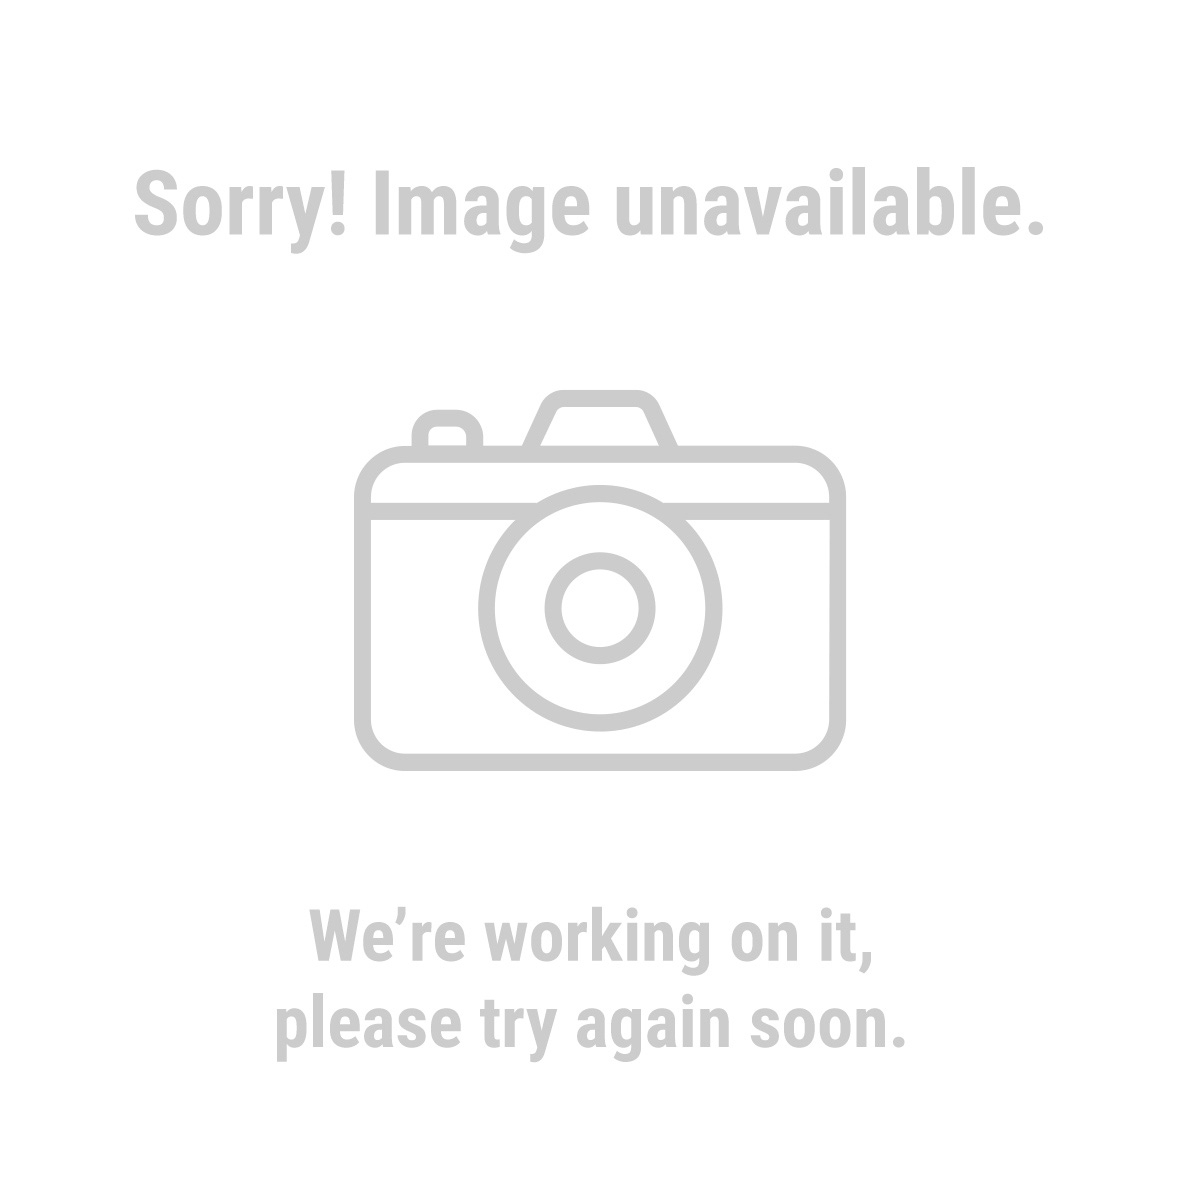 Central Machinery® 42806 Quick Change Tool Post Set for Mini Lathe